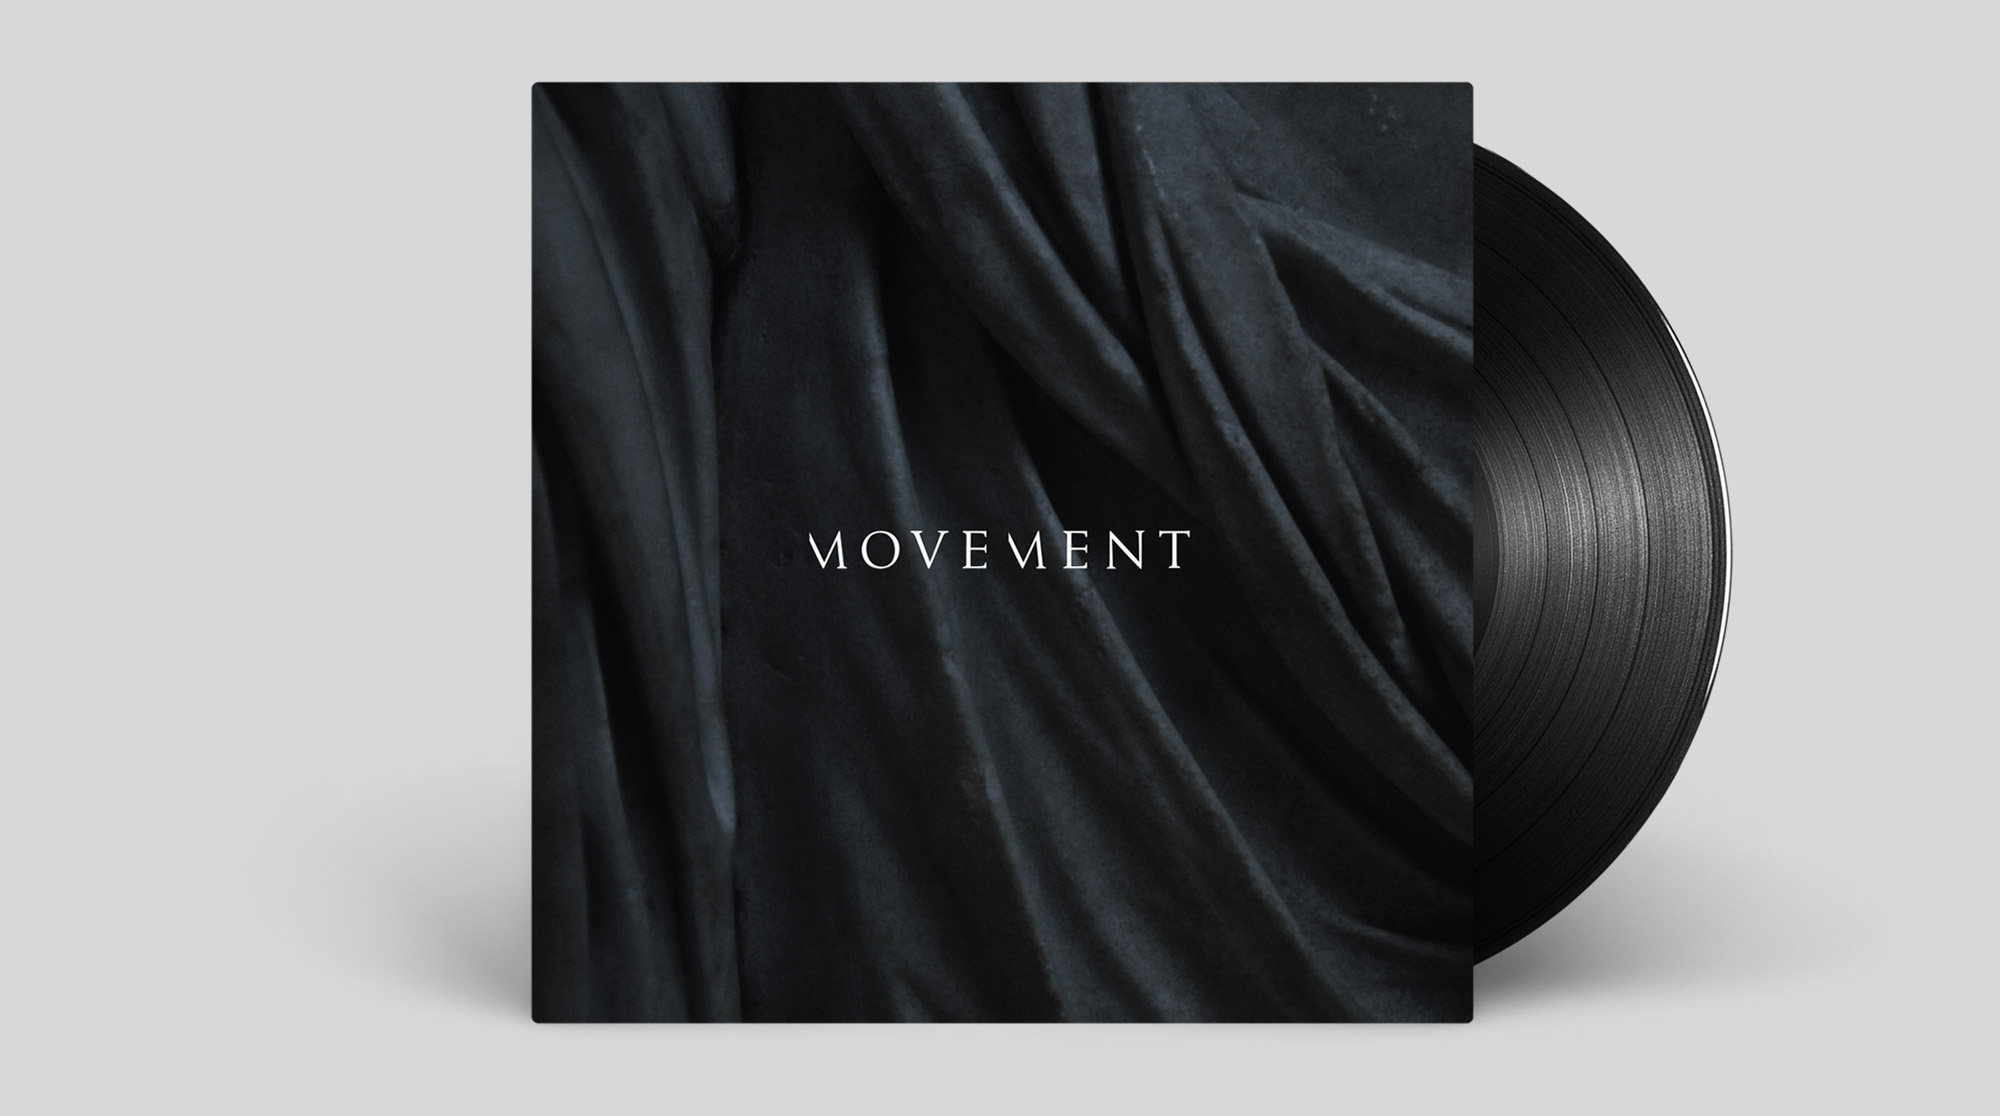 Movement –